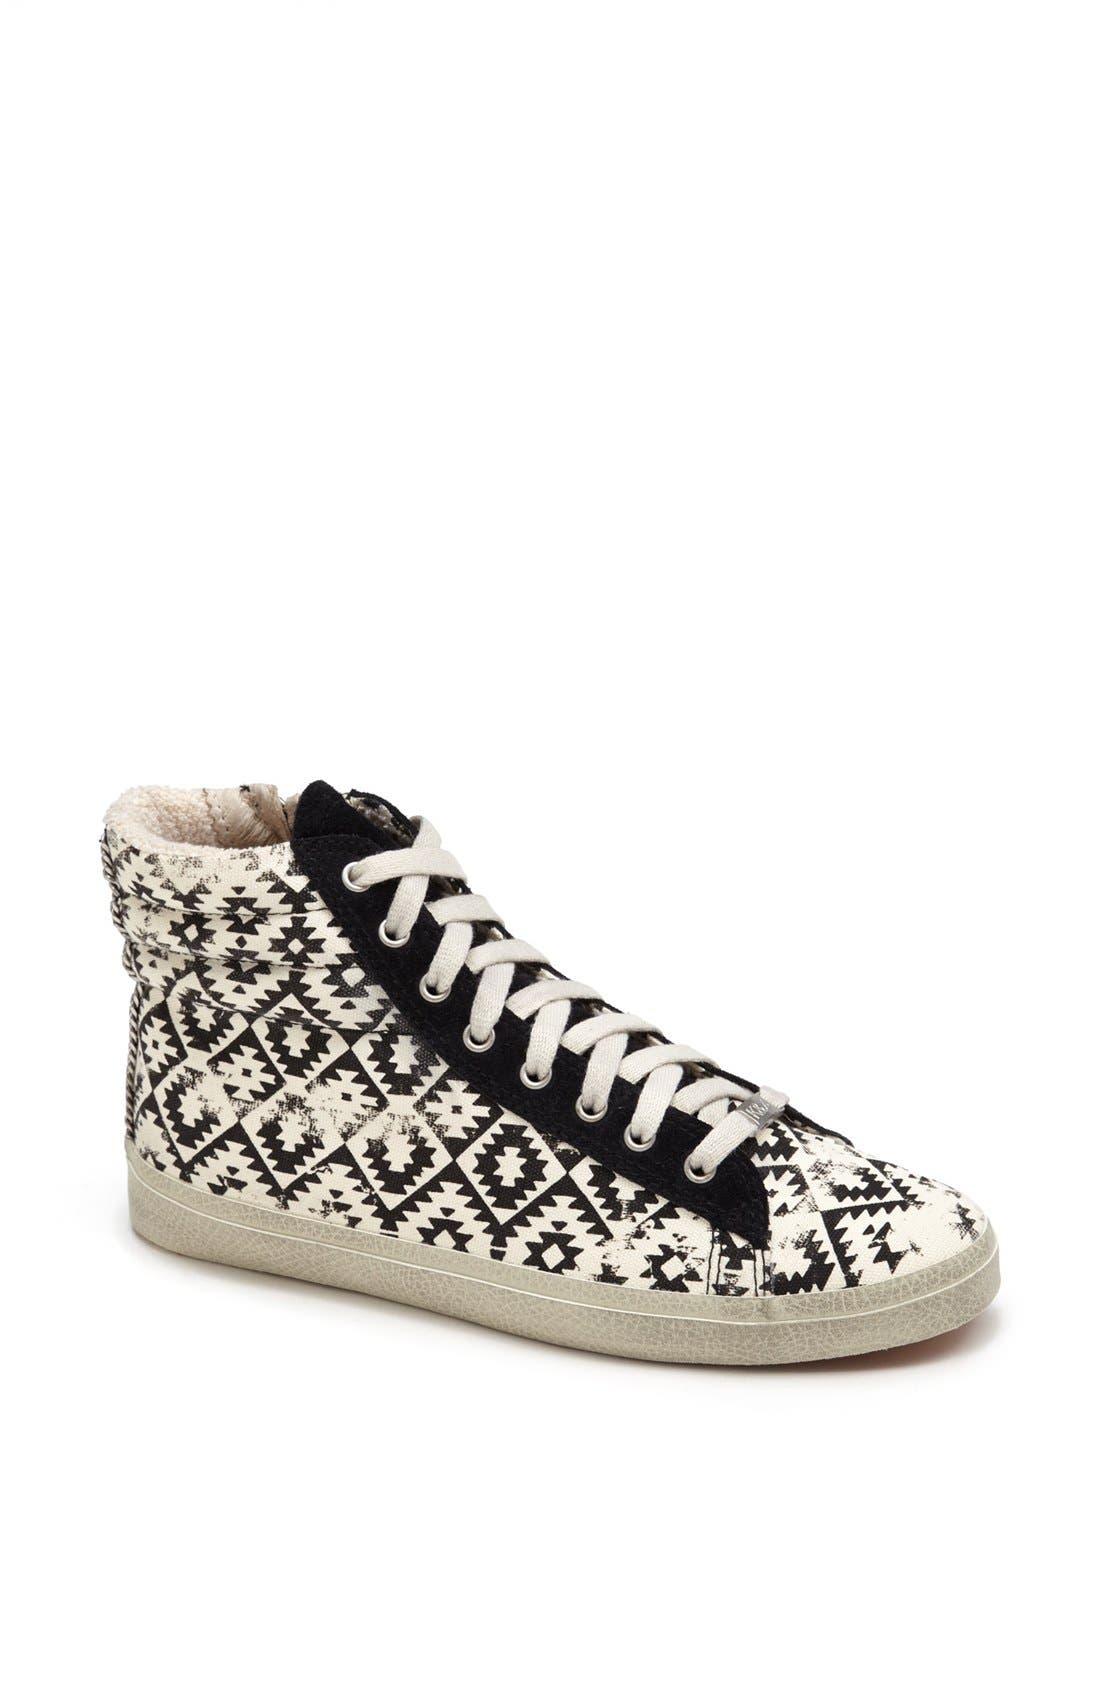 Alternate Image 1 Selected - Kim & Zozi 'Gypster' High Top Sneaker